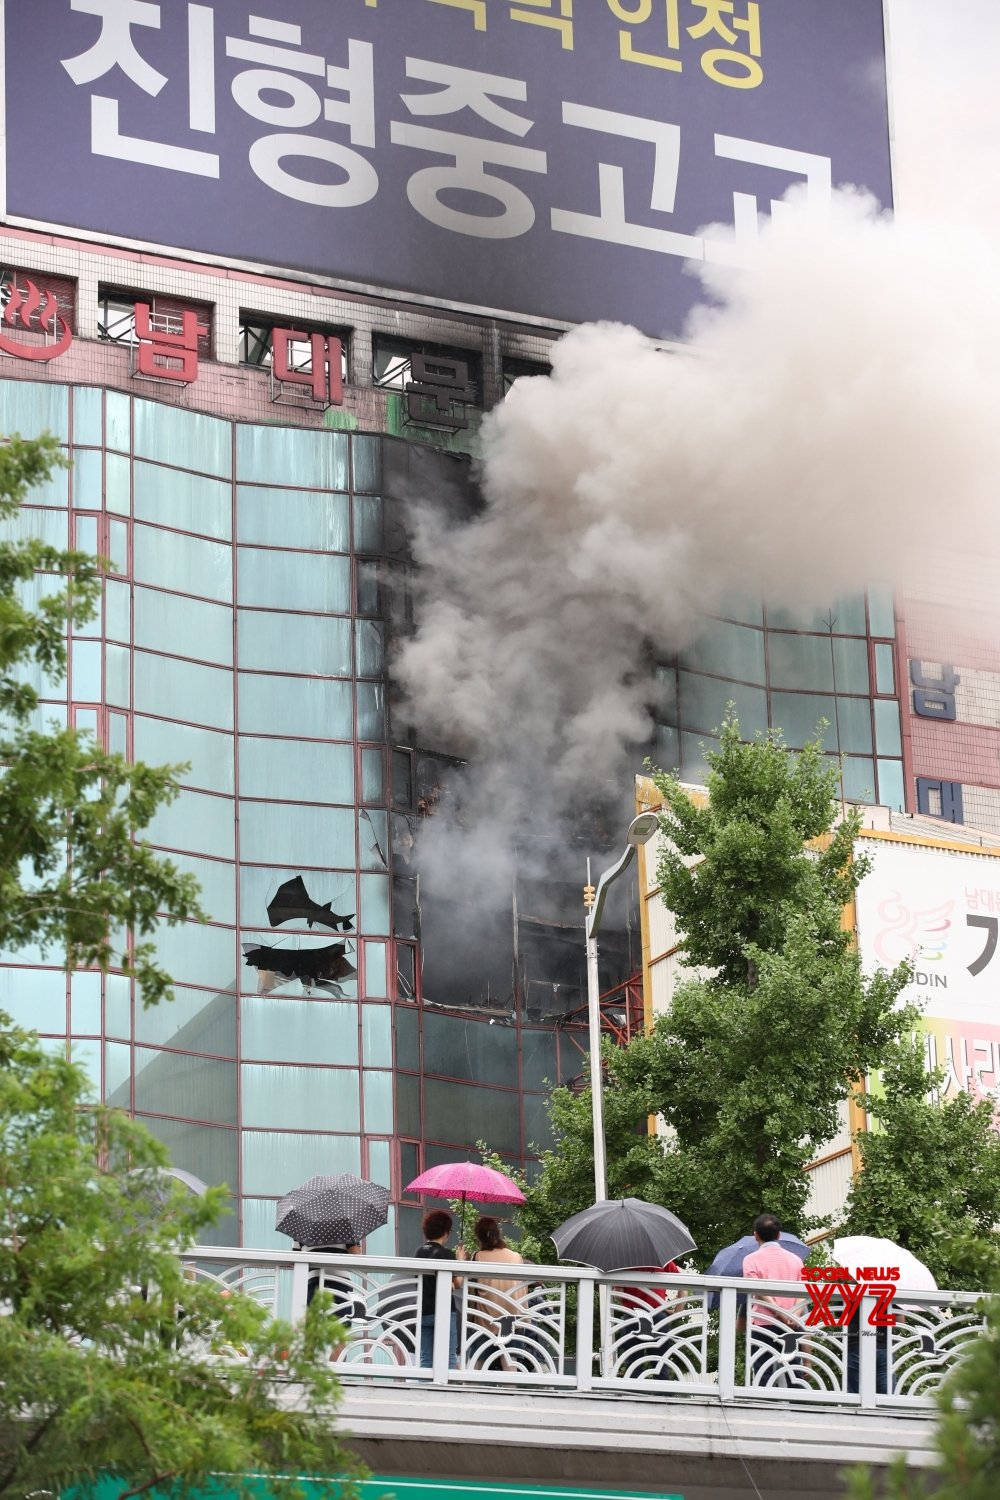 Seoul: Building on fire in central Seoul #Gallery